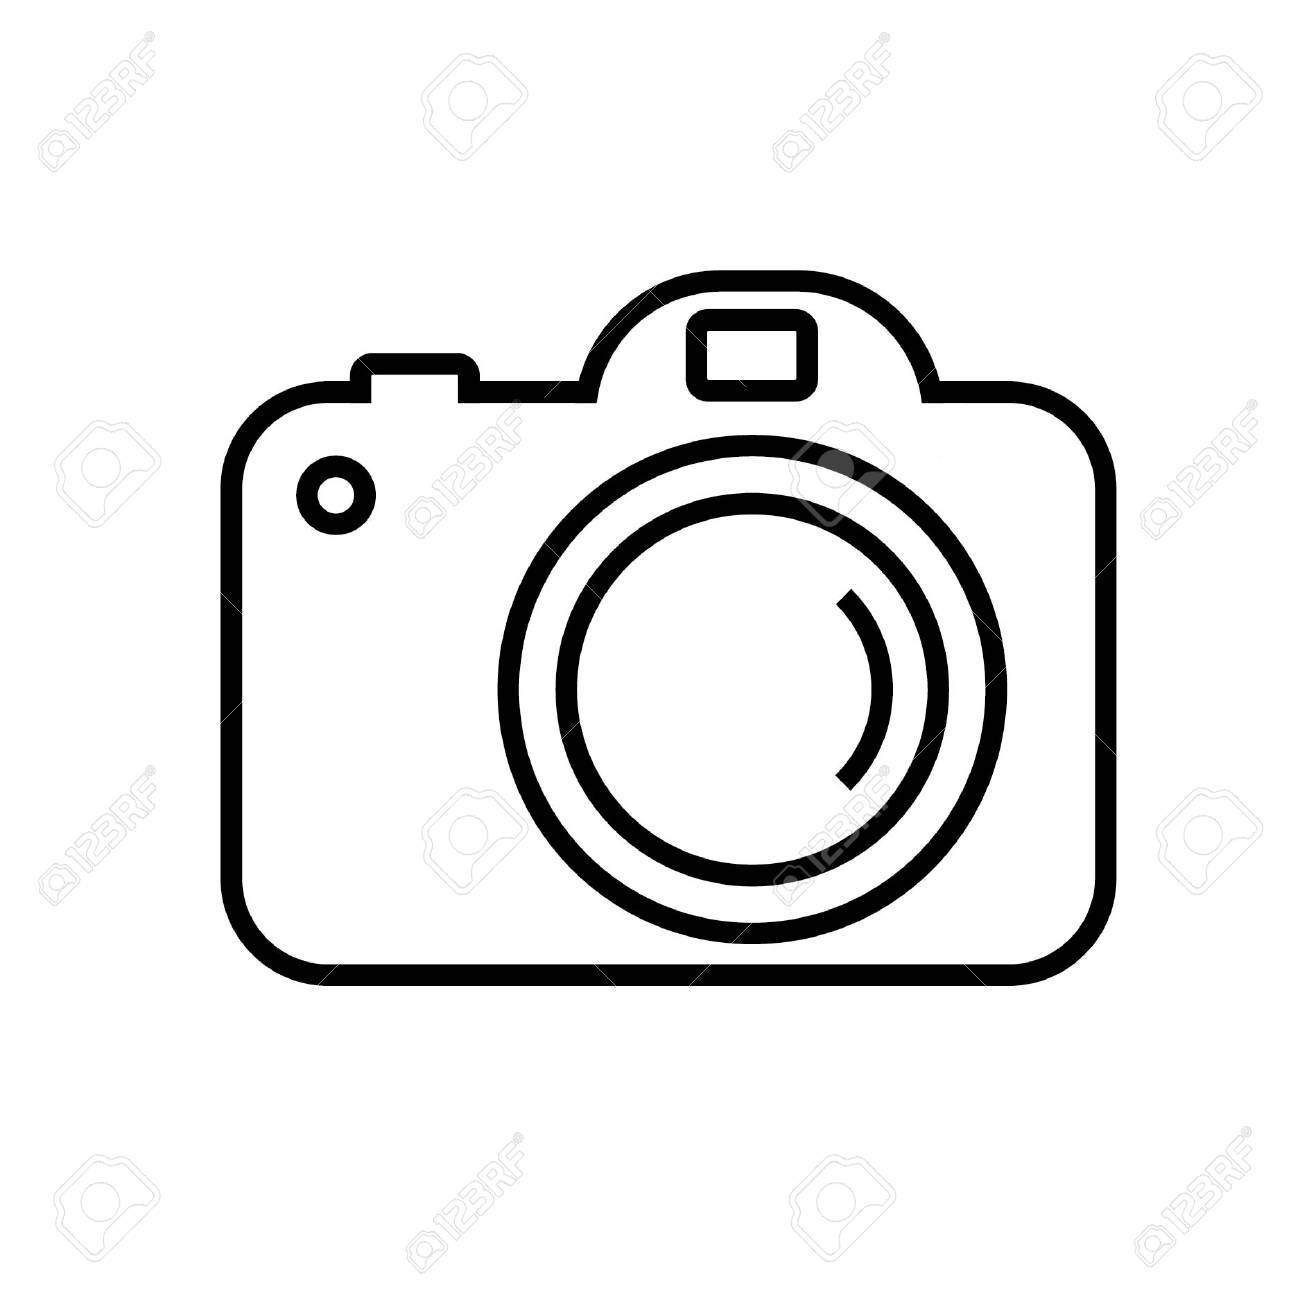 Camera black and white clipart png transparent stock Simple camera clipart black and white 3 » Clipart Portal png transparent stock